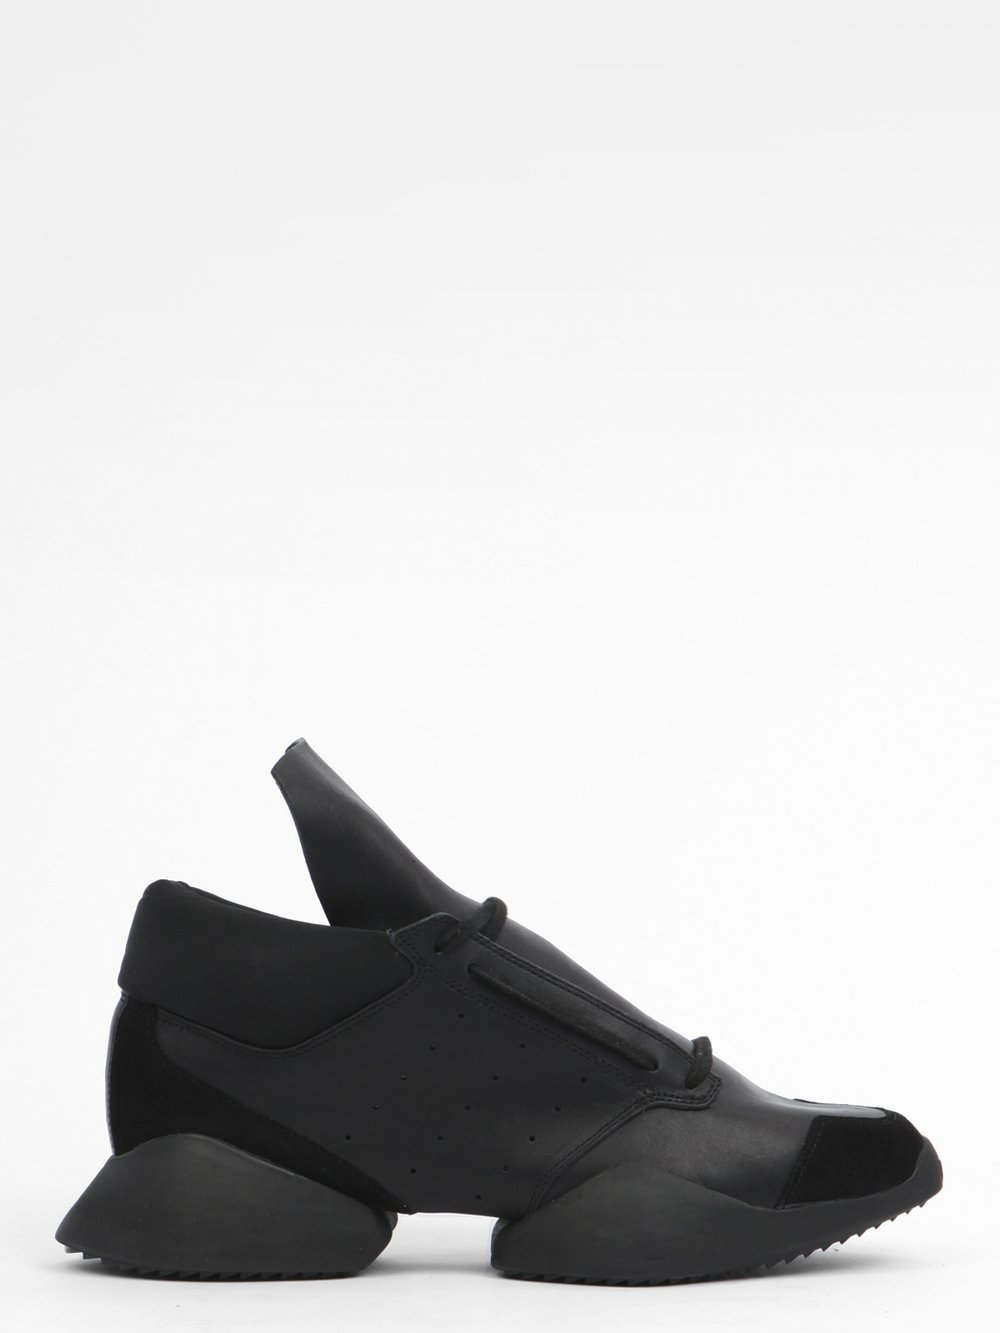 Rick Owens Adidas Originals Edition New Runner Sneakers Zpp8Y